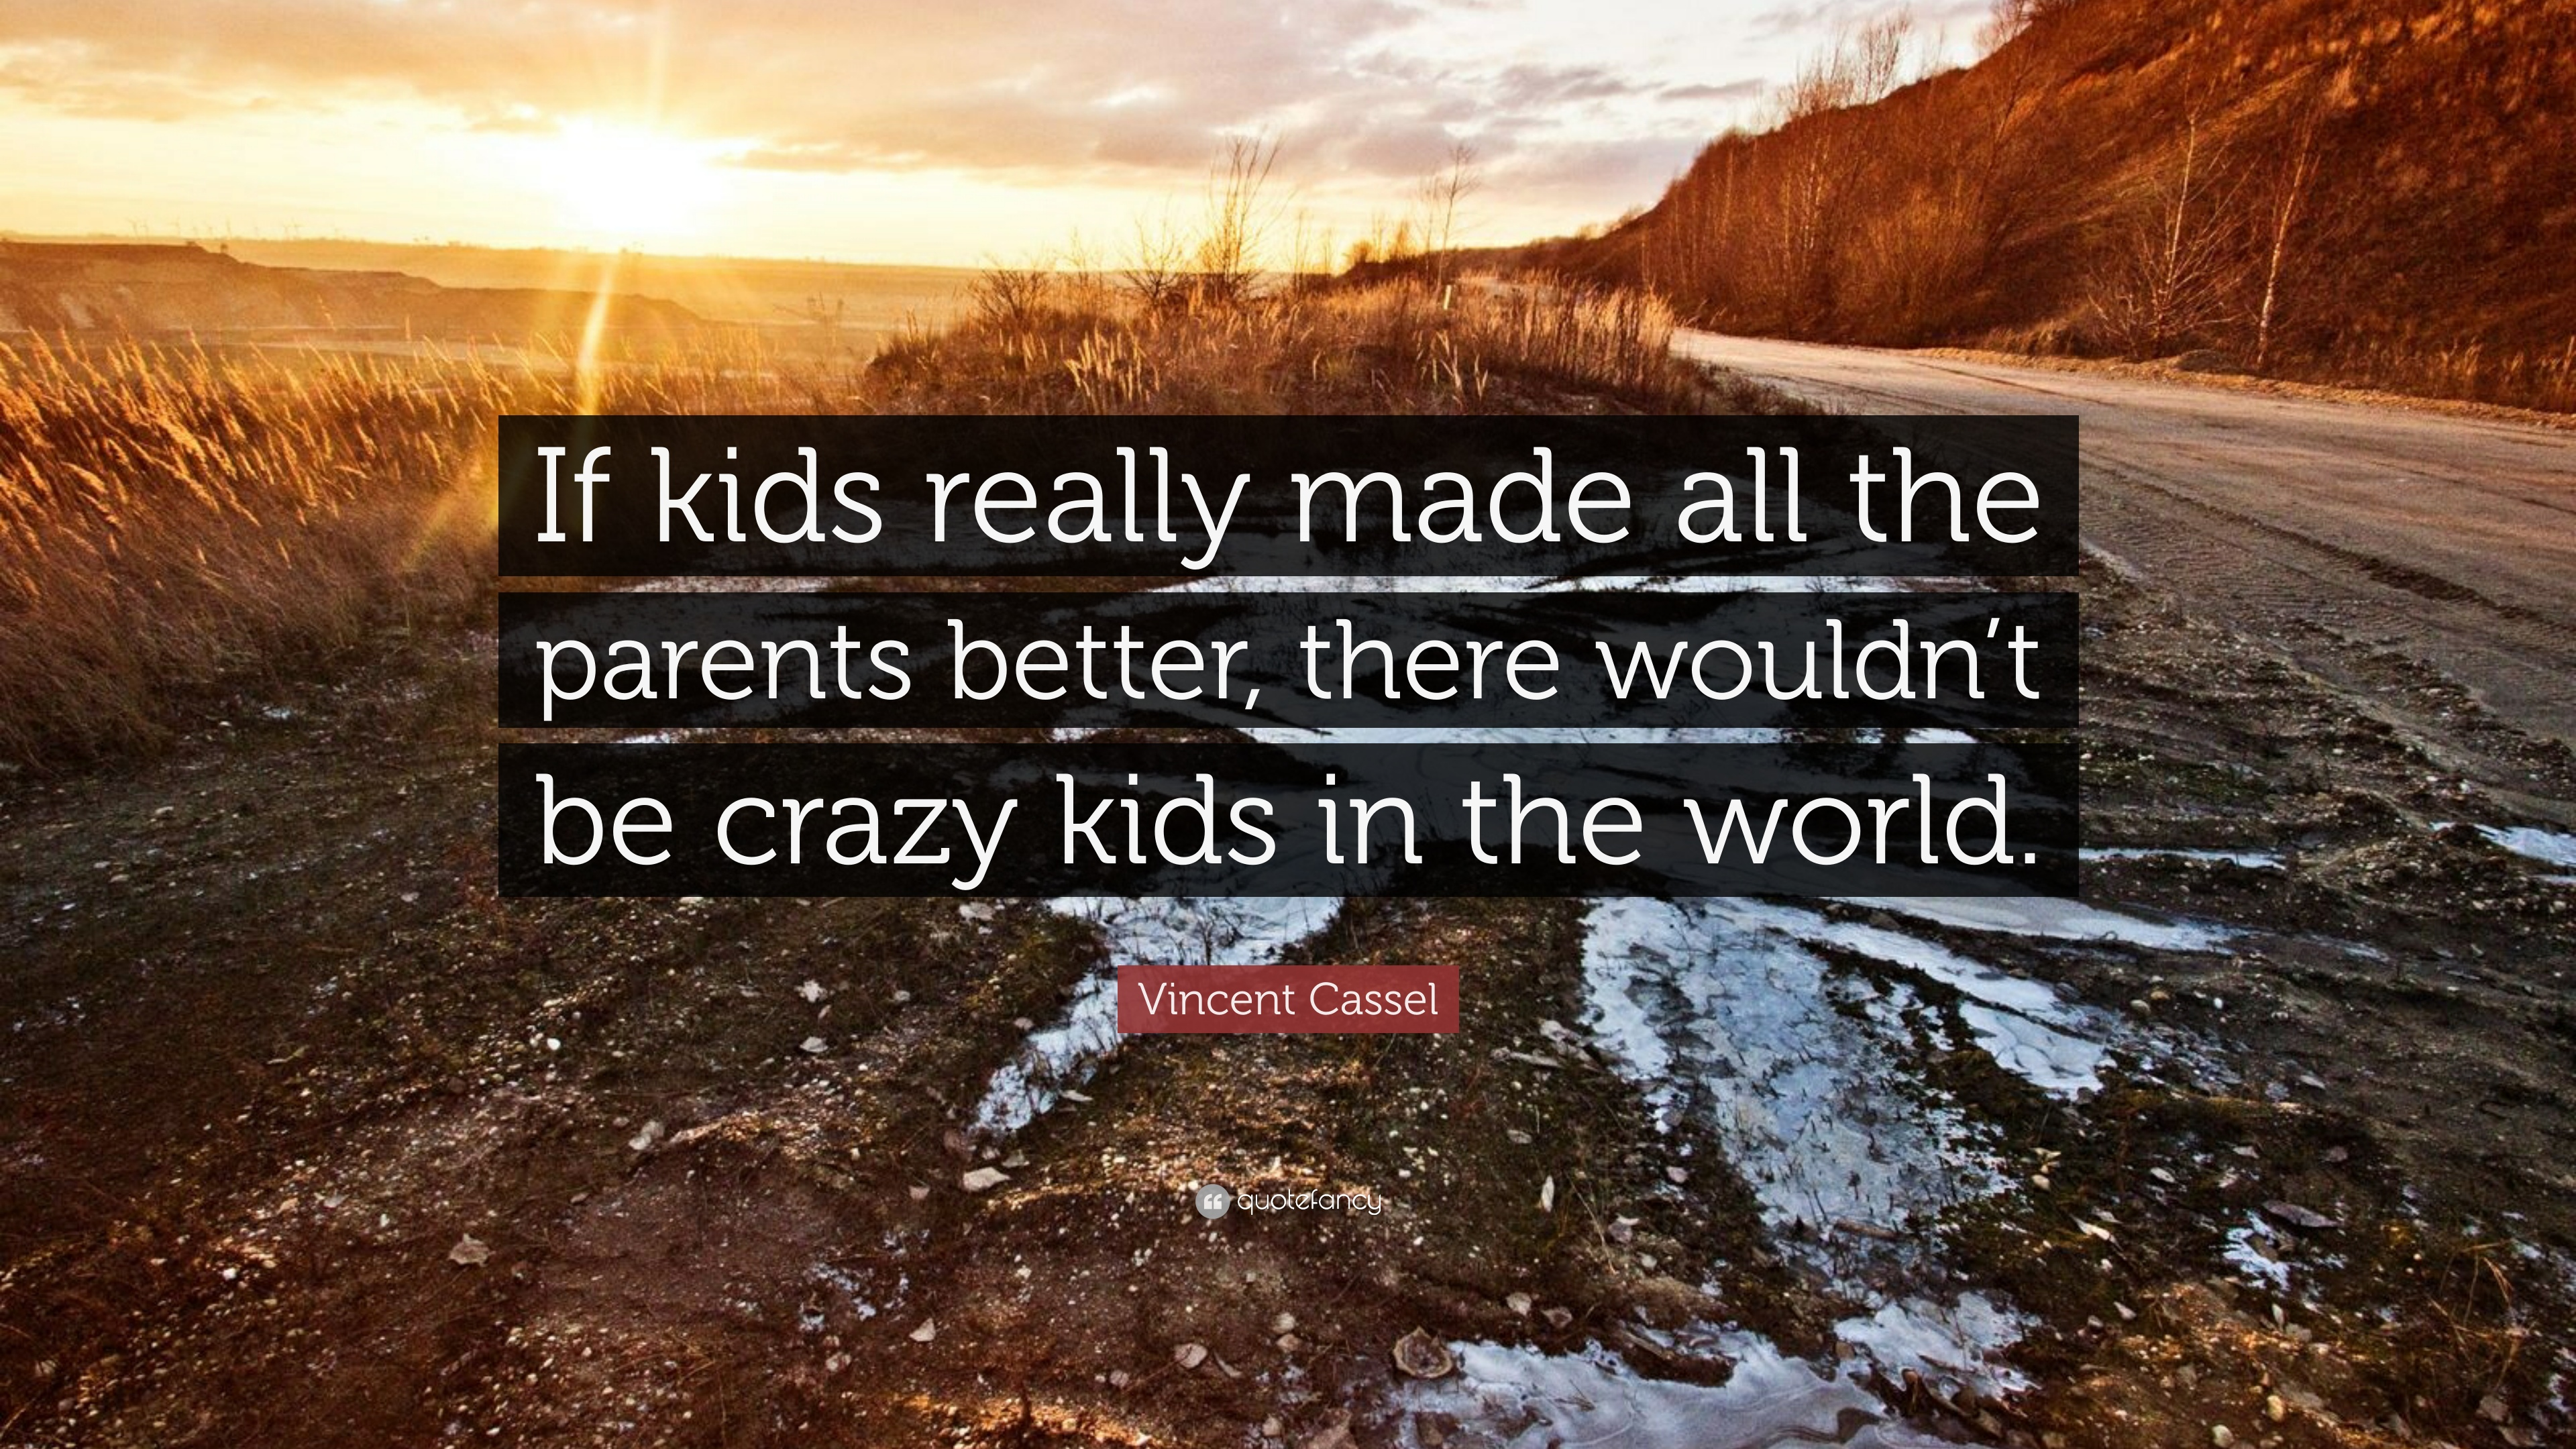 Really crazy parents who love their children too much